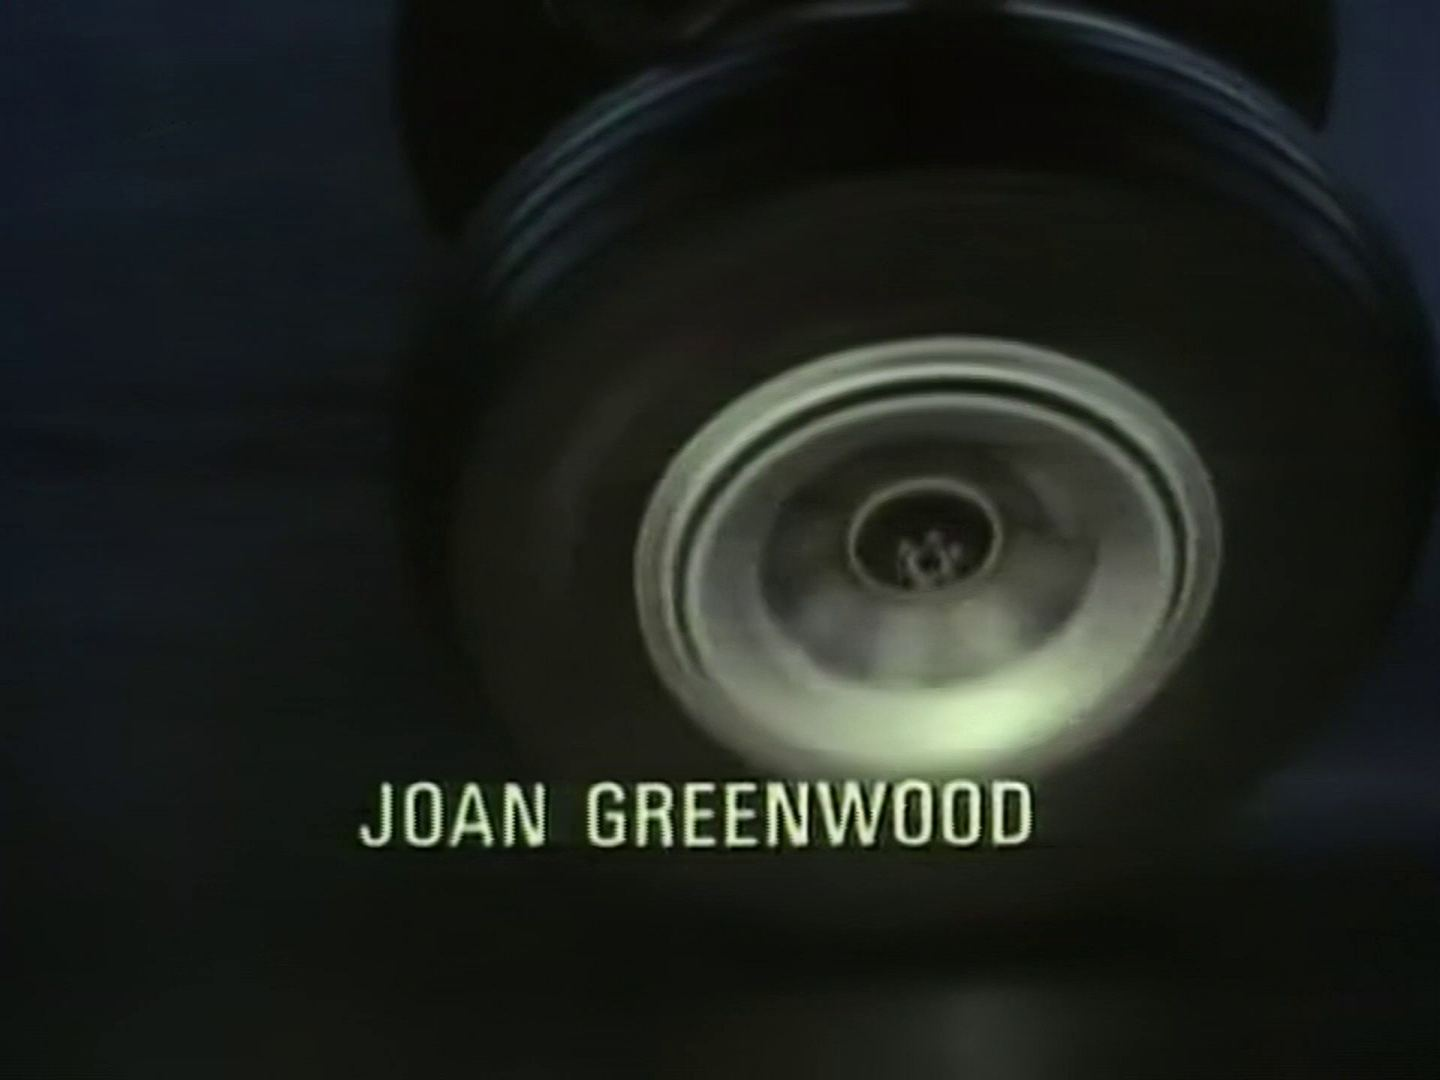 Main title from the 1987 'At Bertram's Hotel' episode of Agatha Christie's Miss Marple (1984-1992) (8). Joan Greenwood